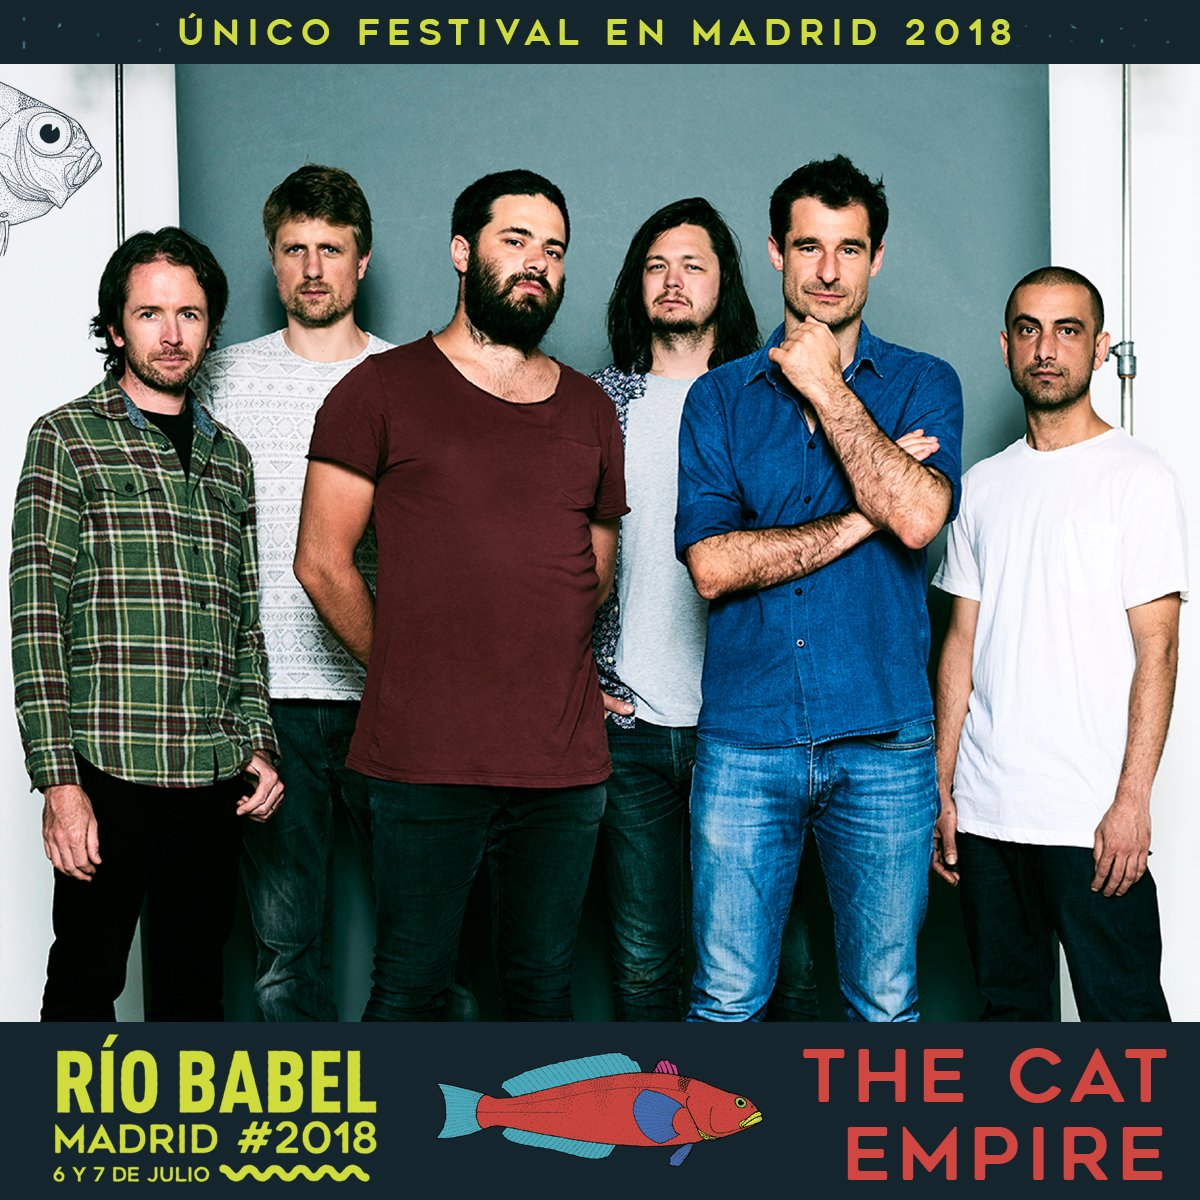 The Cat Empire, We The Lion, Los Caligaris y Juanito Makandé se suman al cartel de la segunda edición del festival Río Babel.